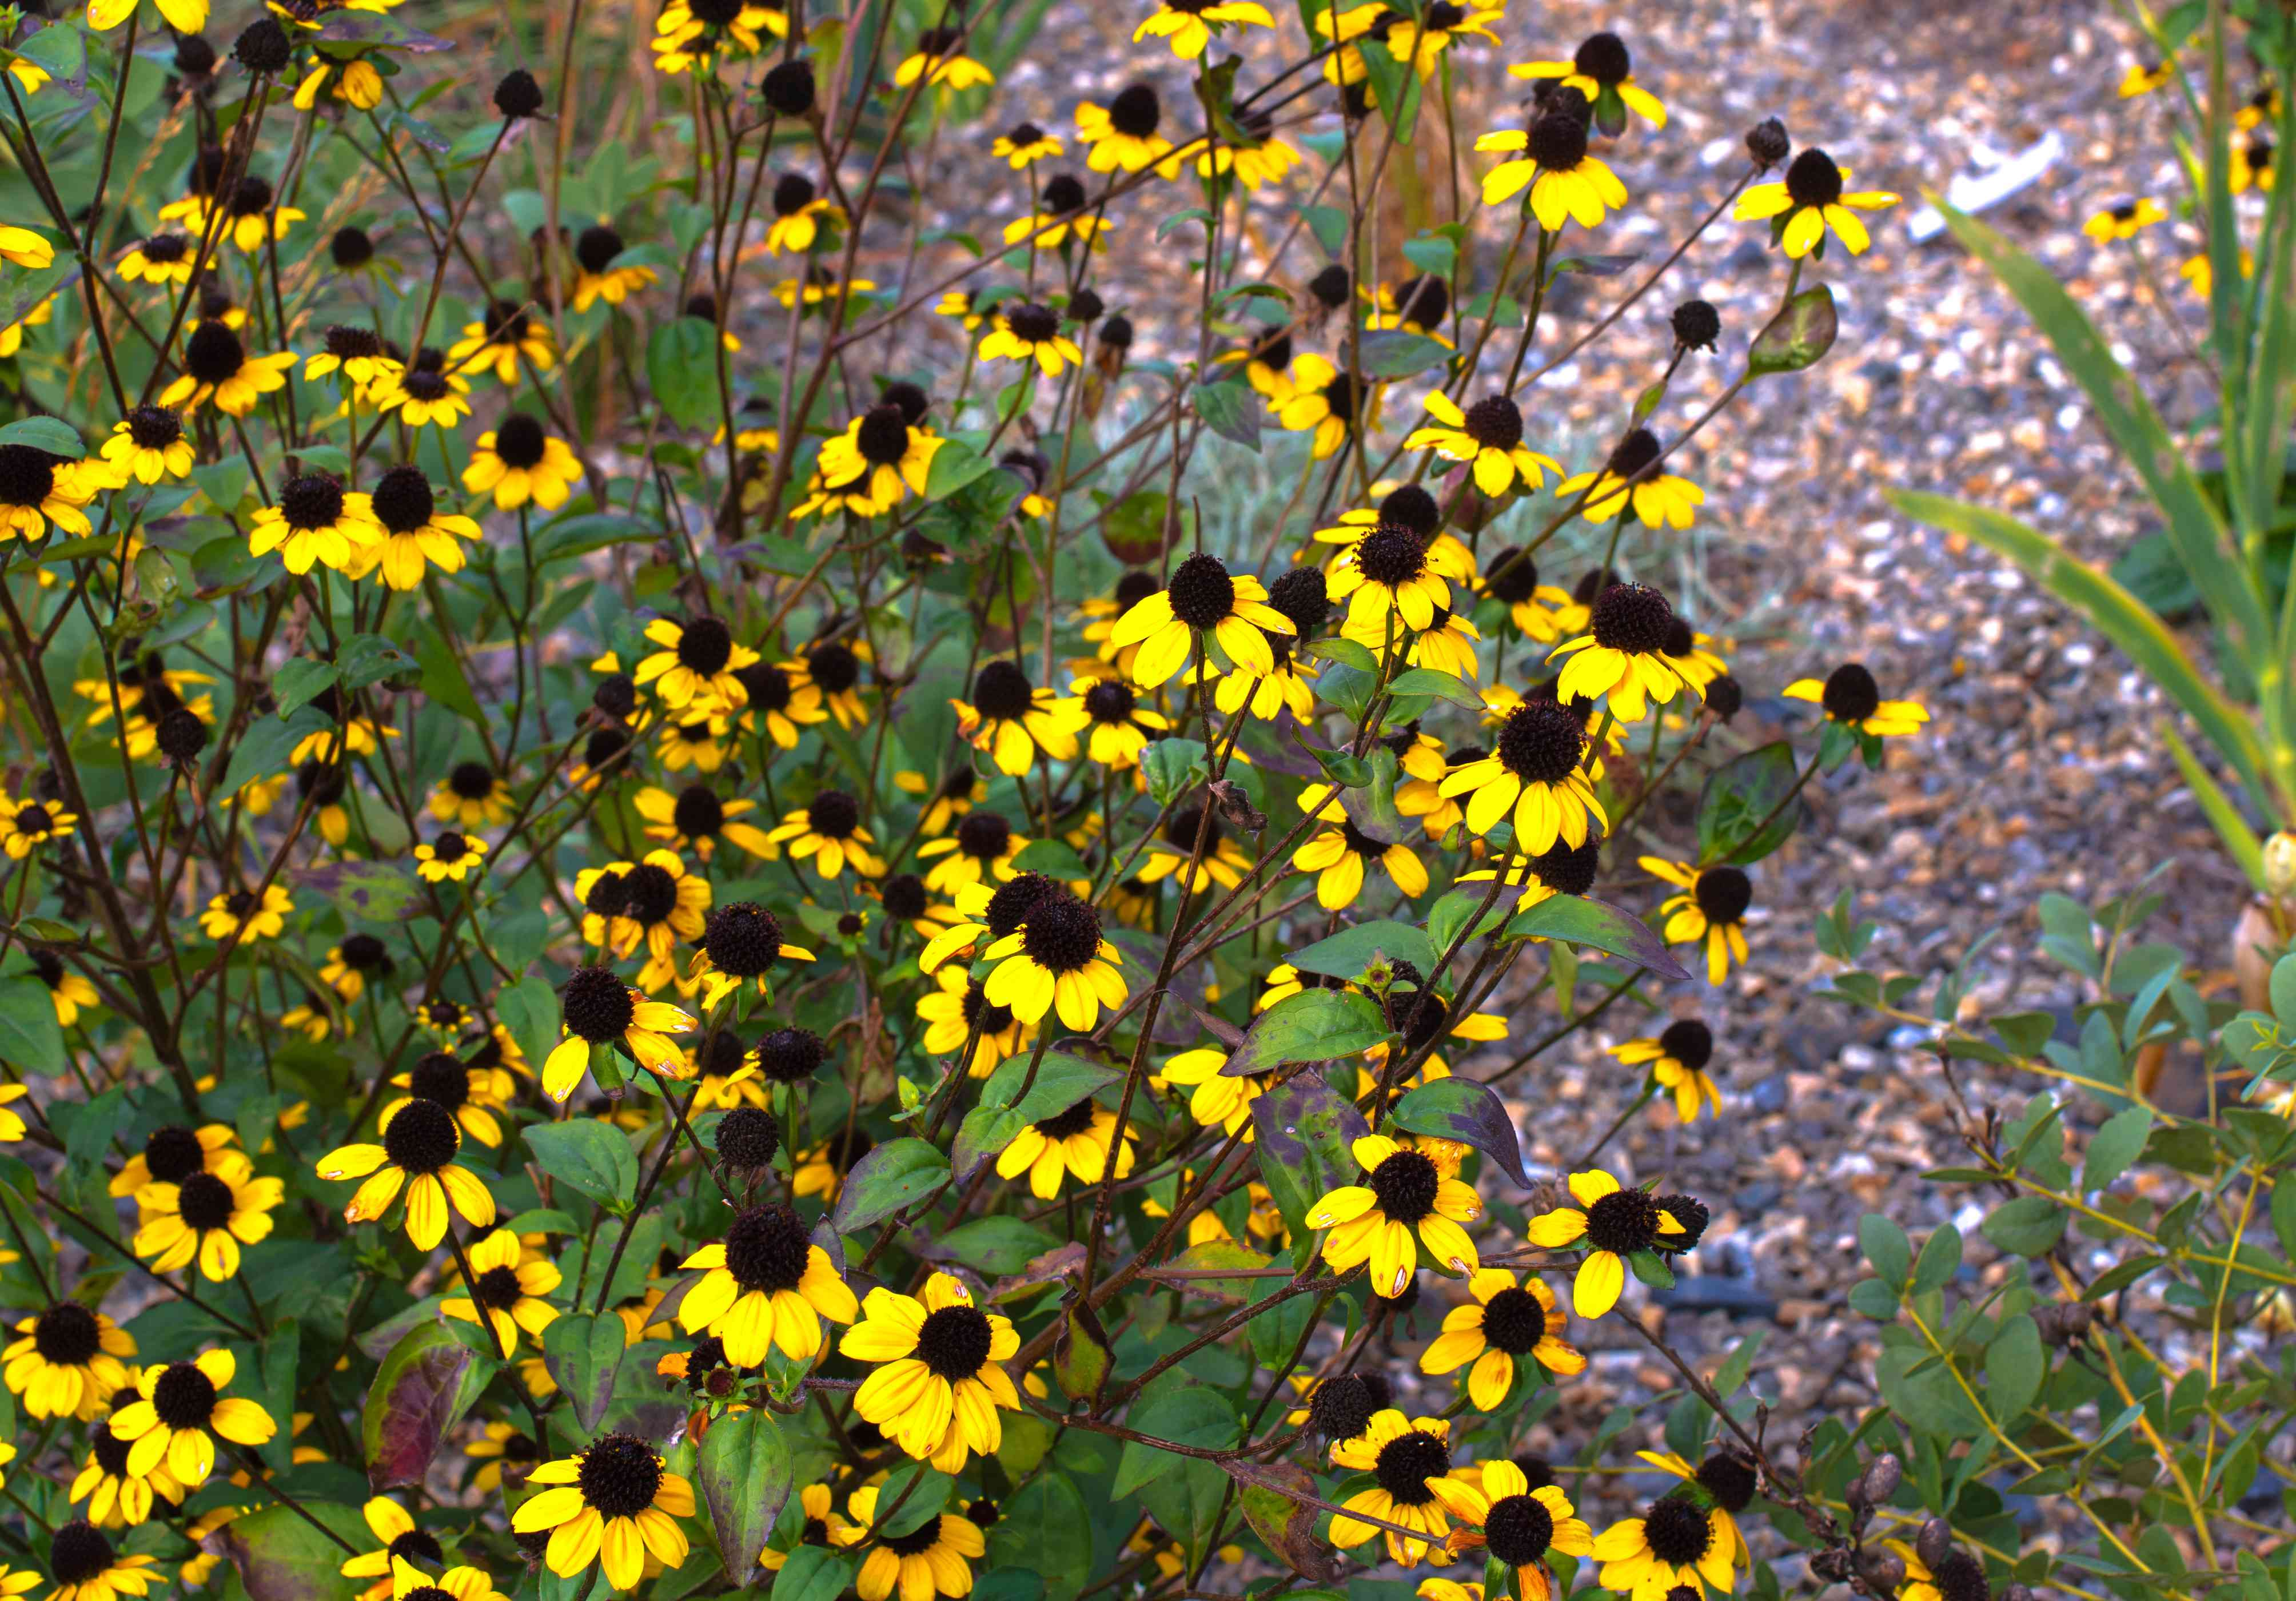 Brown-eyed susan wildflowers with bright yellow blooms and brown round centers on thin stems closeup